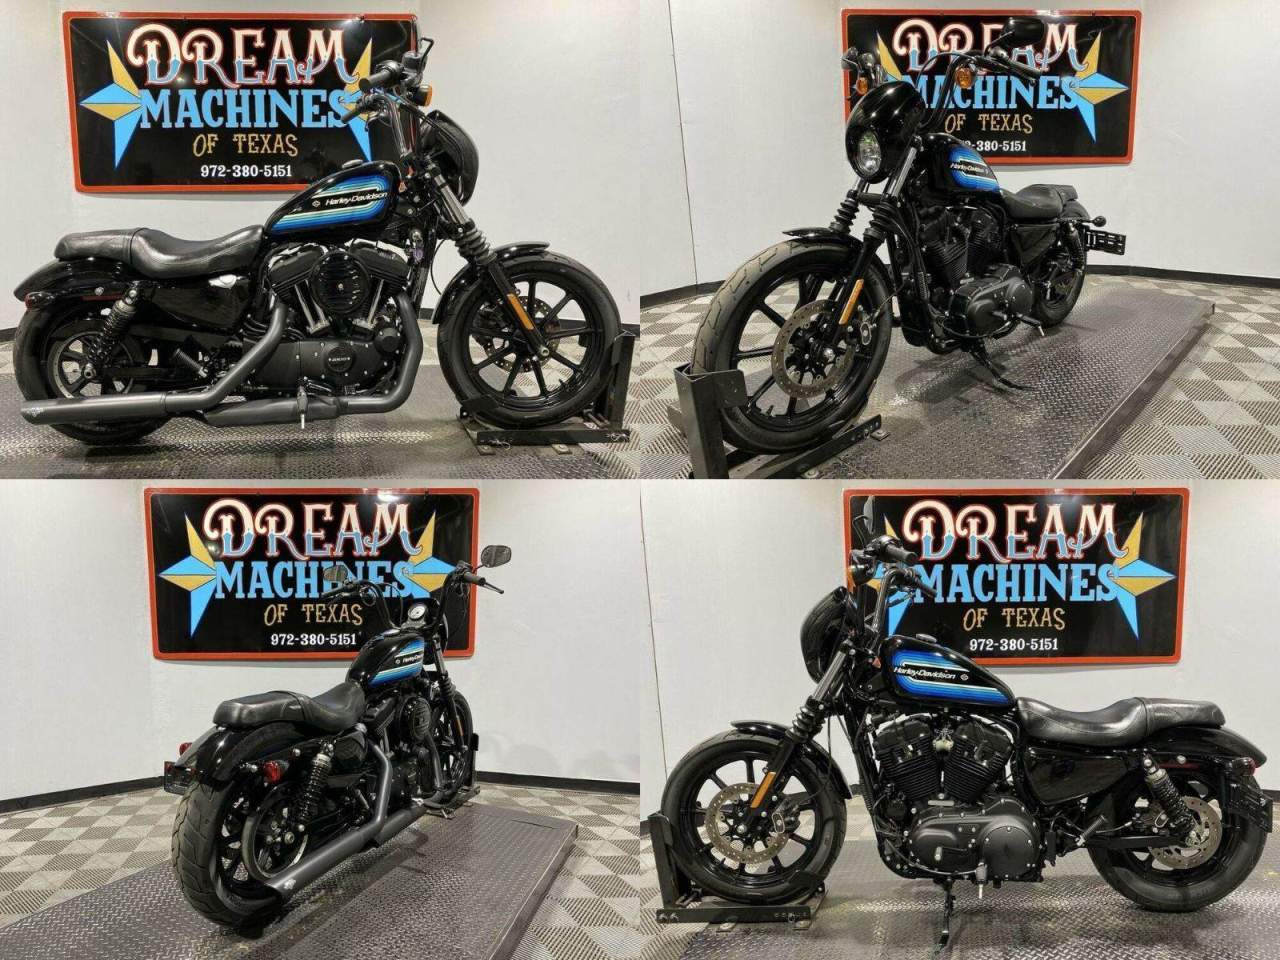 2019 Harley-Davidson XL 1200NS - Sportster Iron 1200 Black used for sale near me